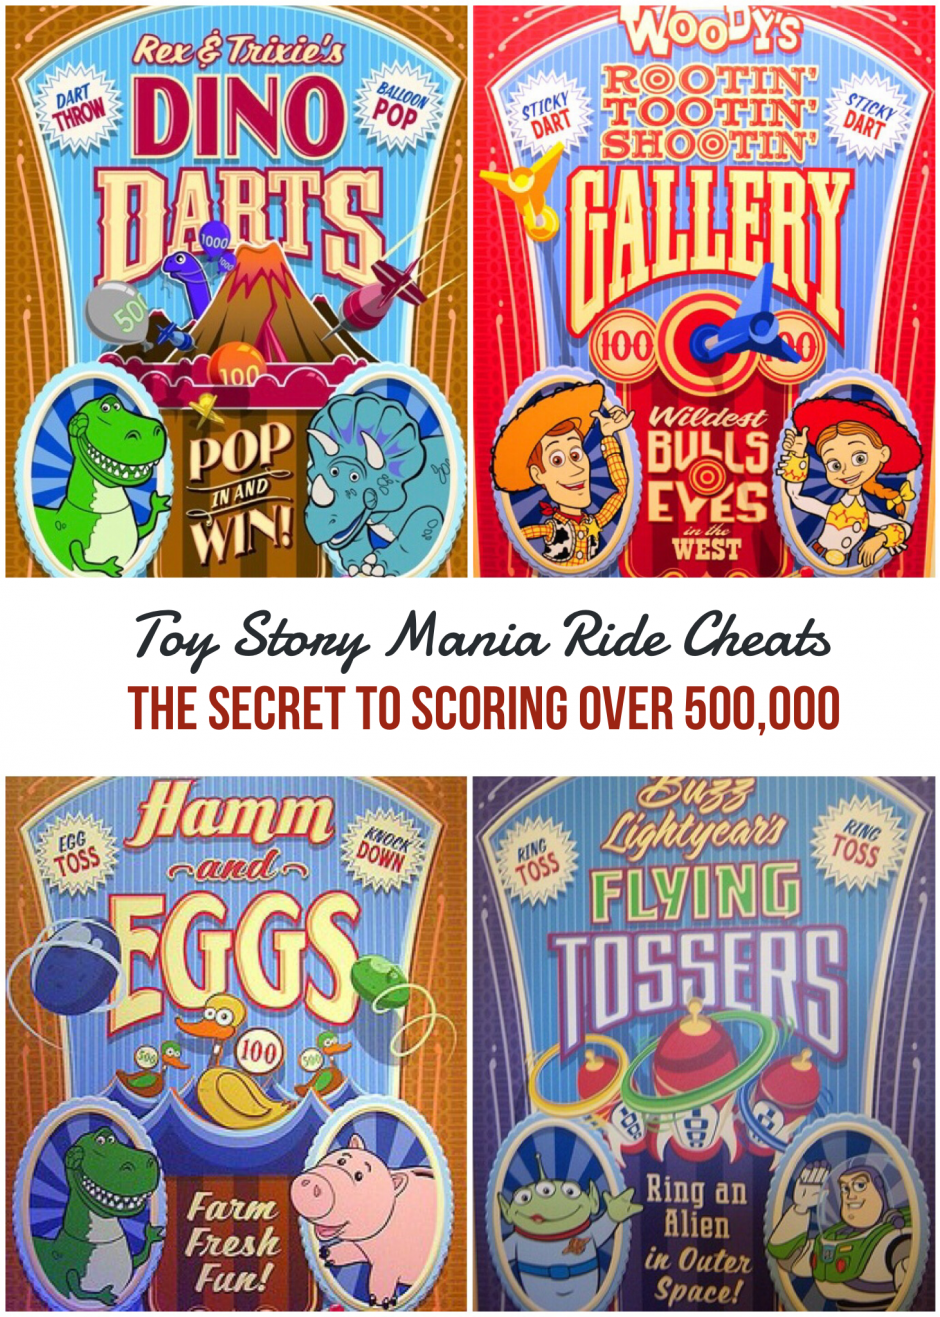 Toy Story Midway Mania Ride Cheats - The Secret to Scoring Over 500,000 Points